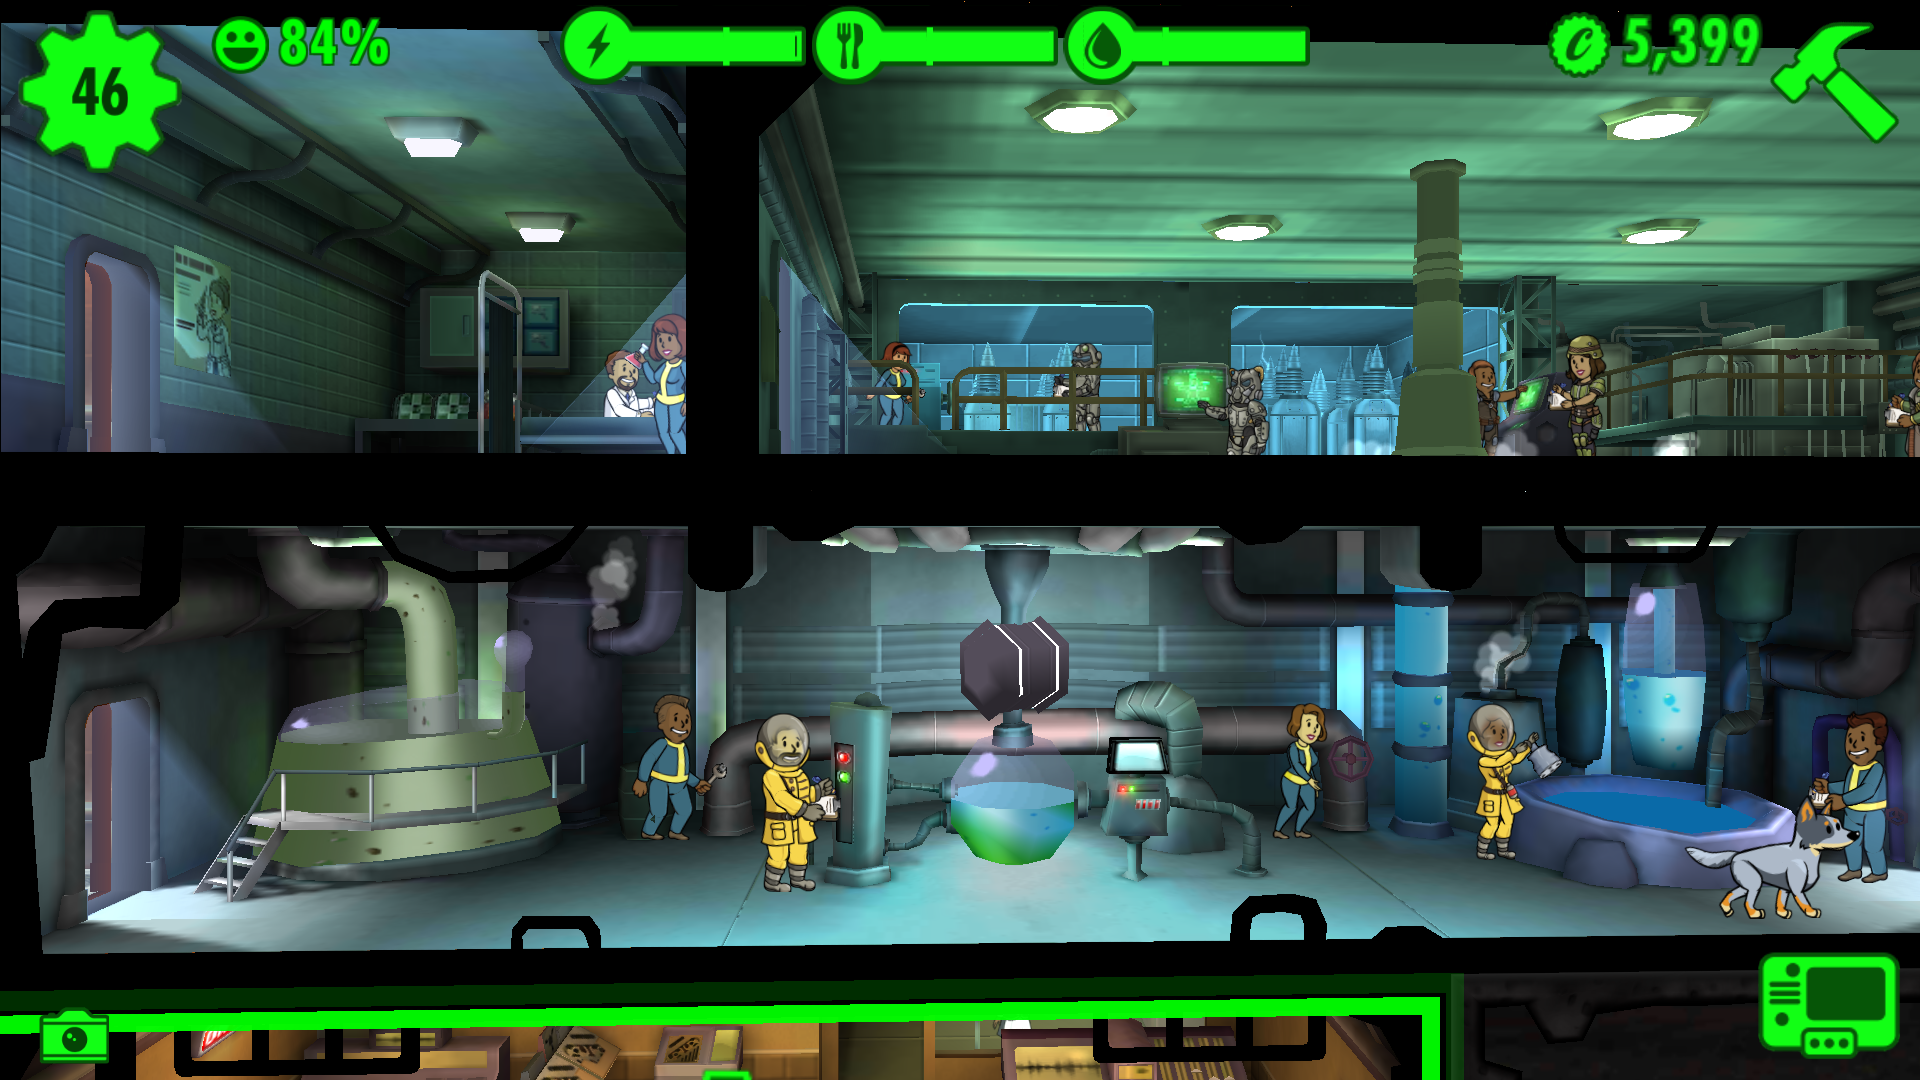 Fallout Shelter Screenshots for Android - MobyGames